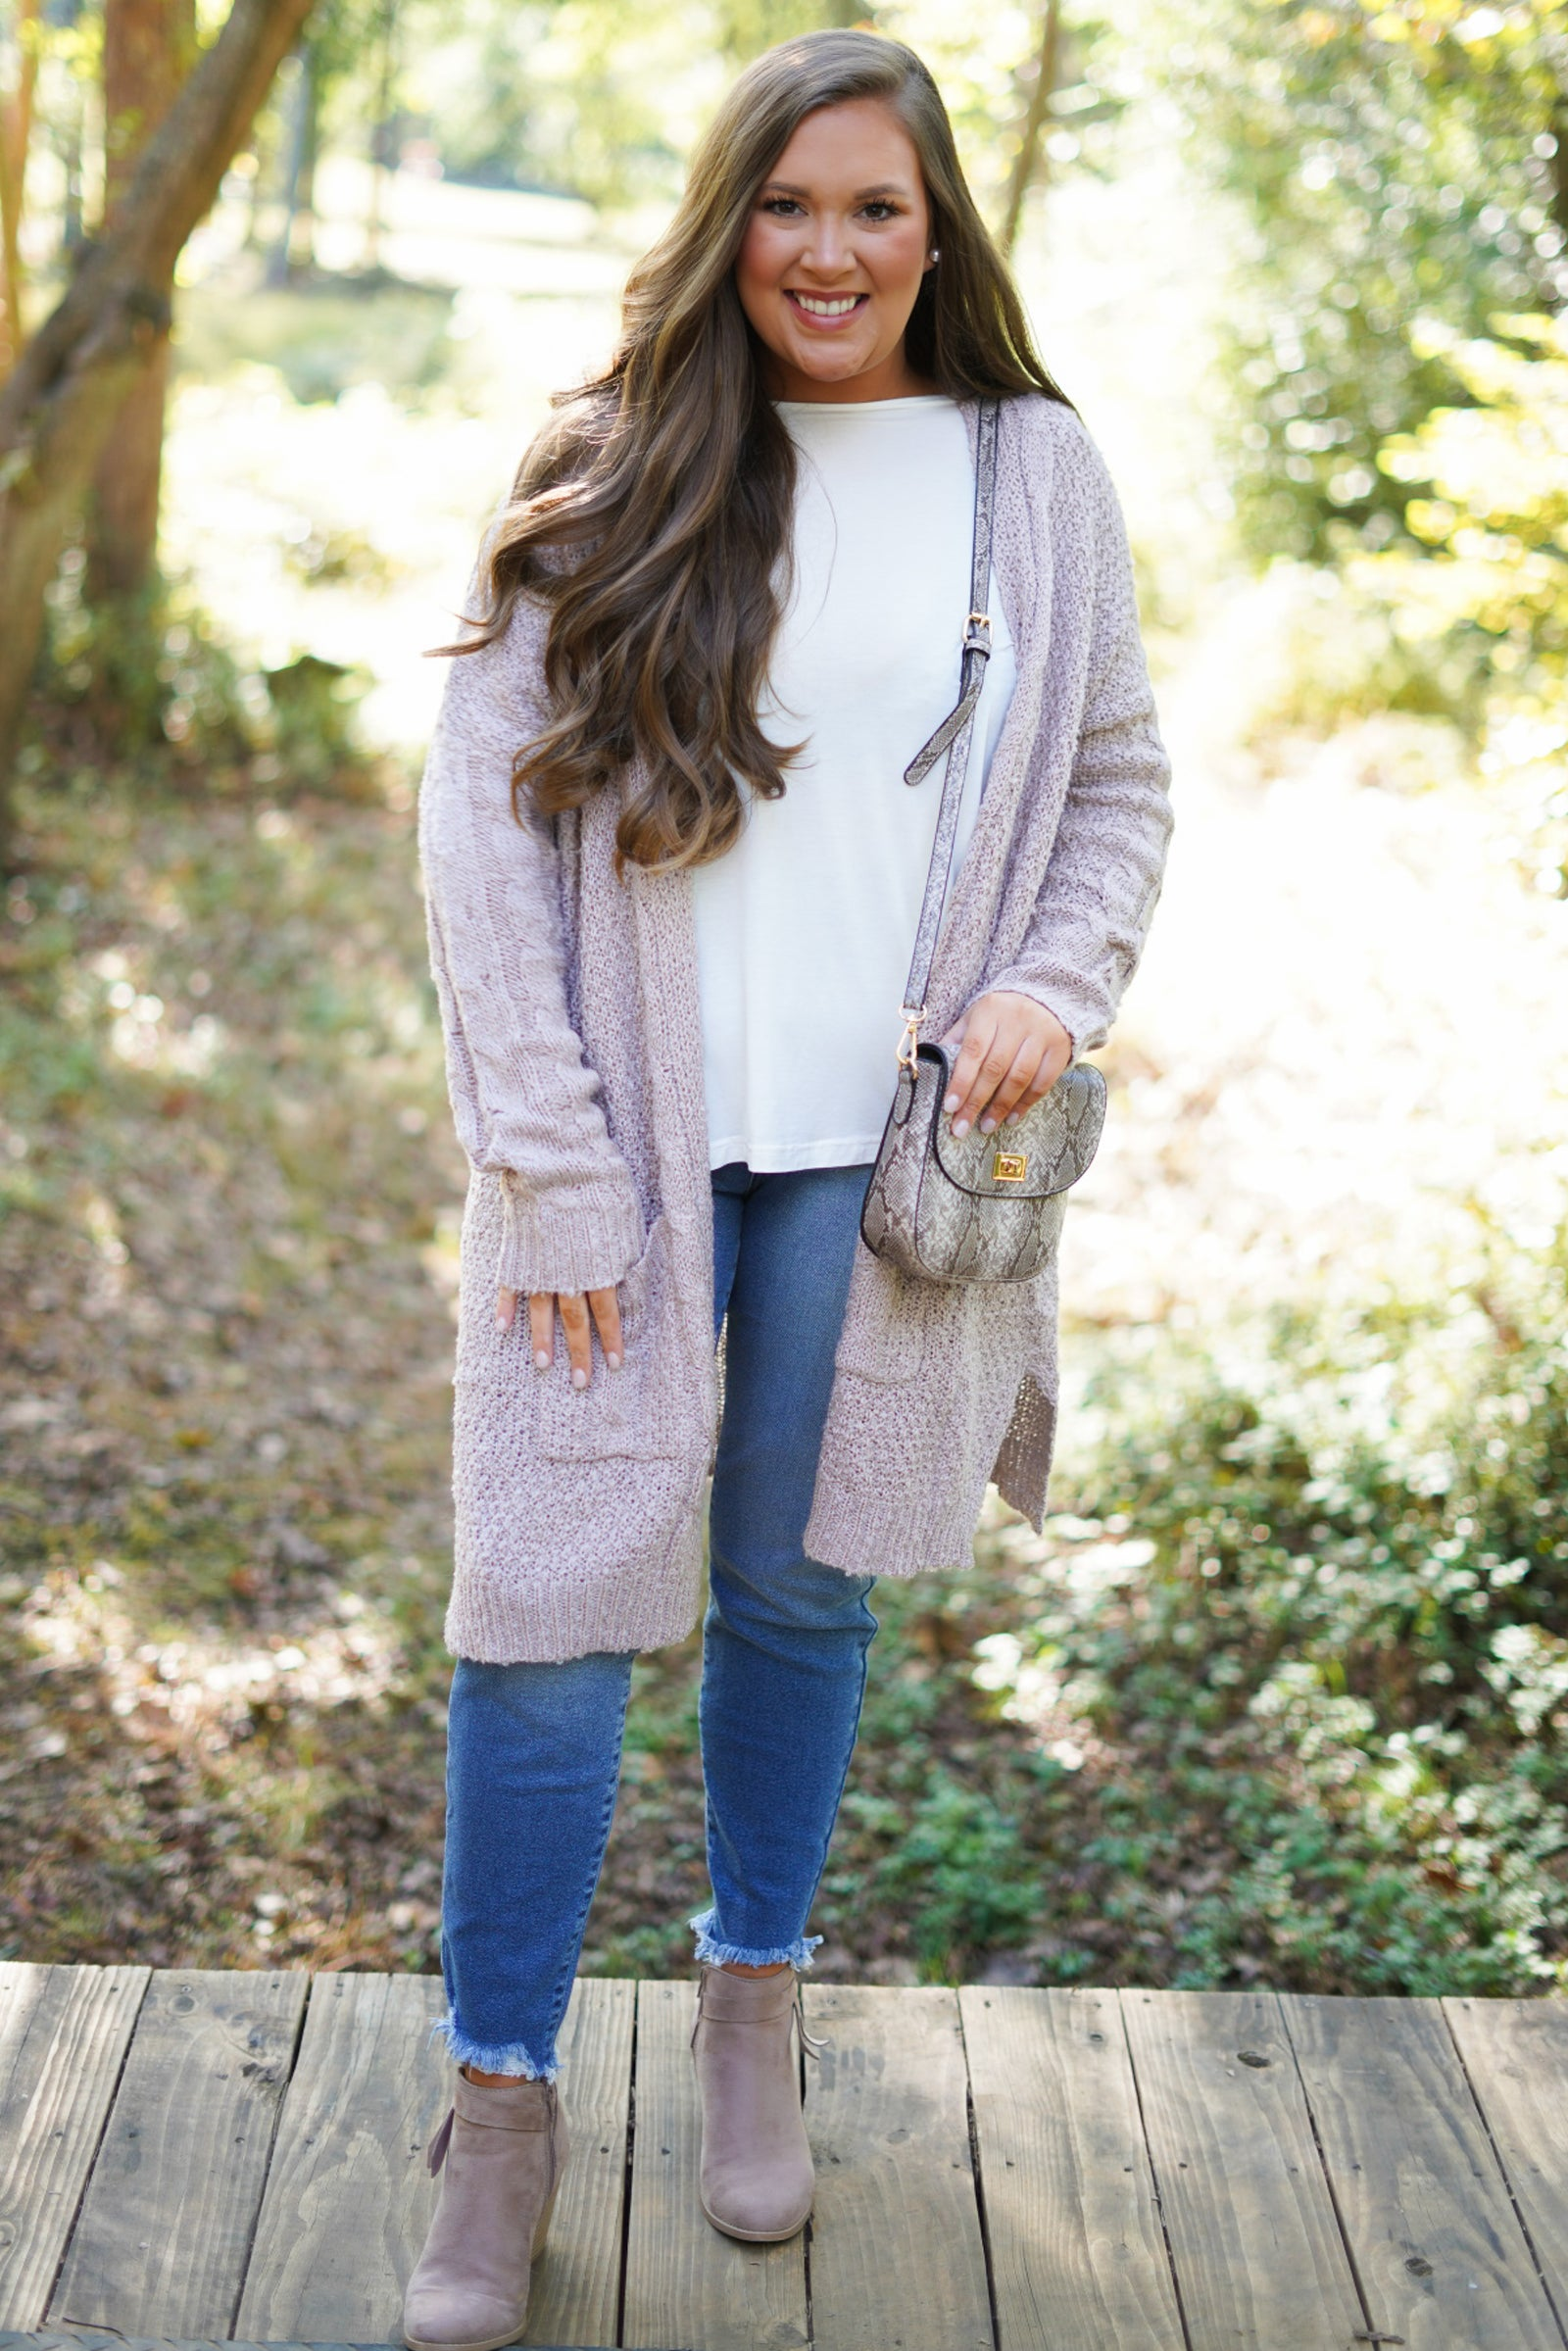 All About You Cardigan